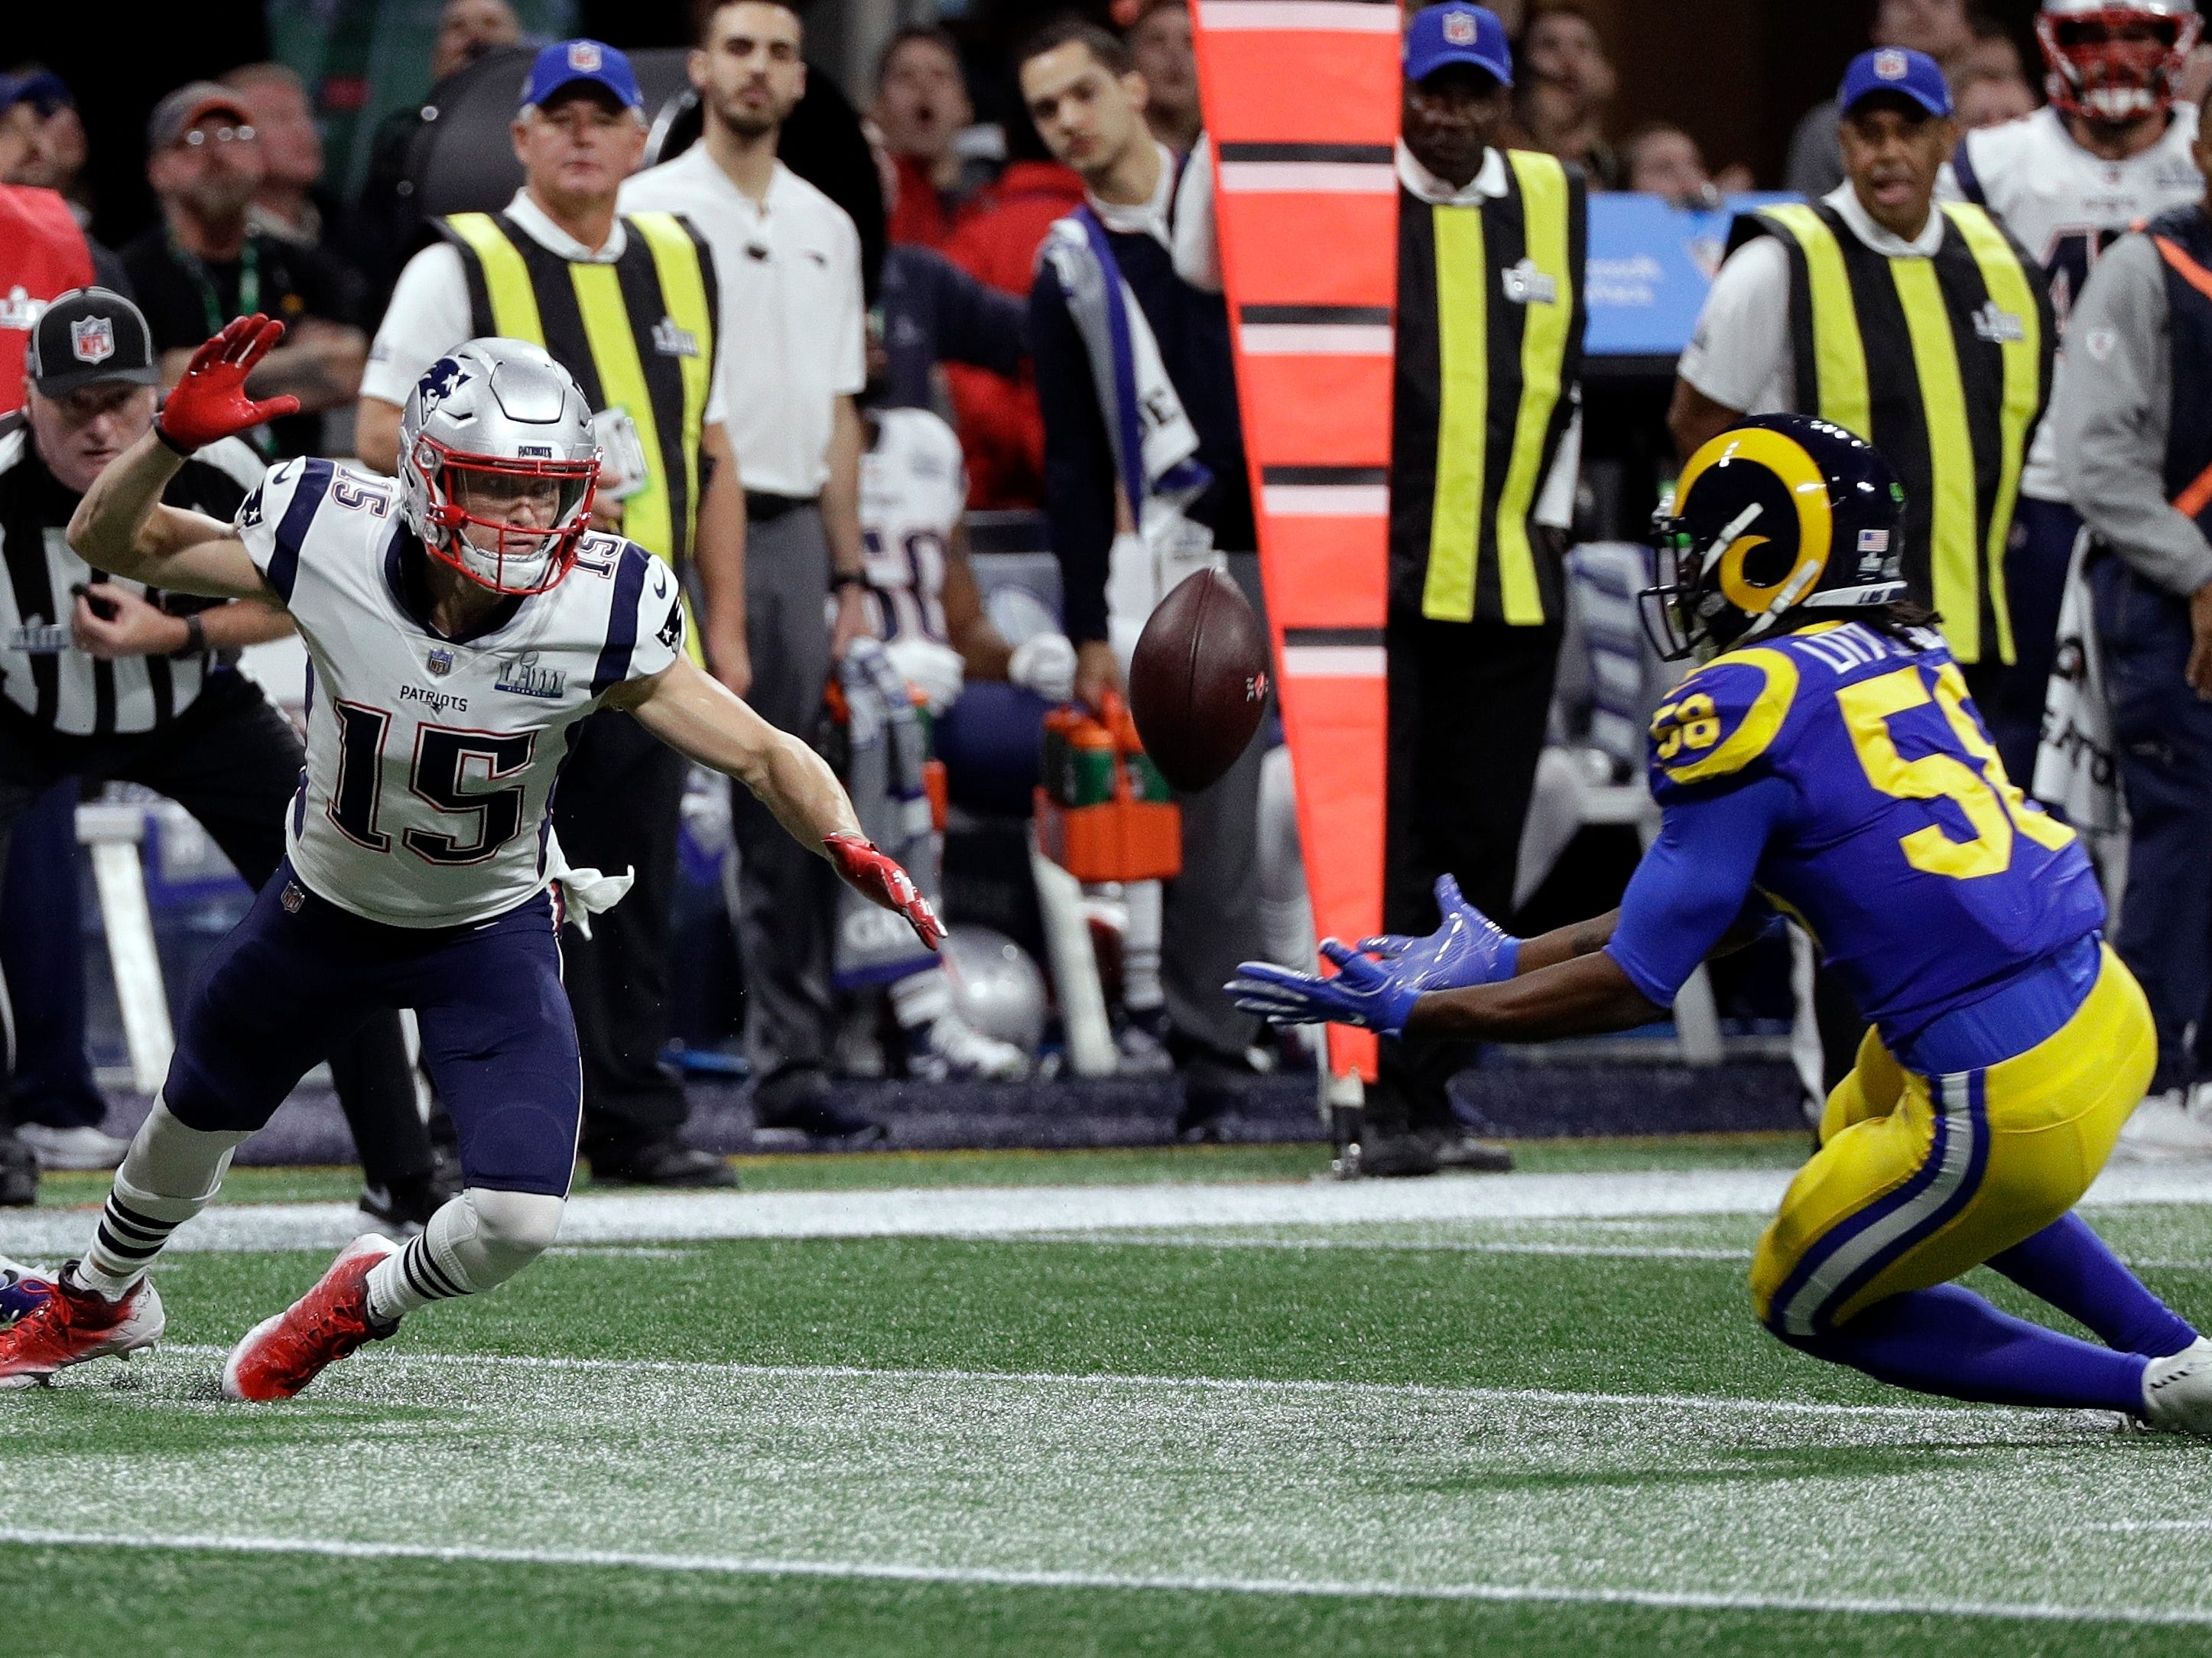 Los Angeles Rams' Cory Littleton, right, intercepts a pass intended for New England Patriots' Chris Hogan, left, during the first half.